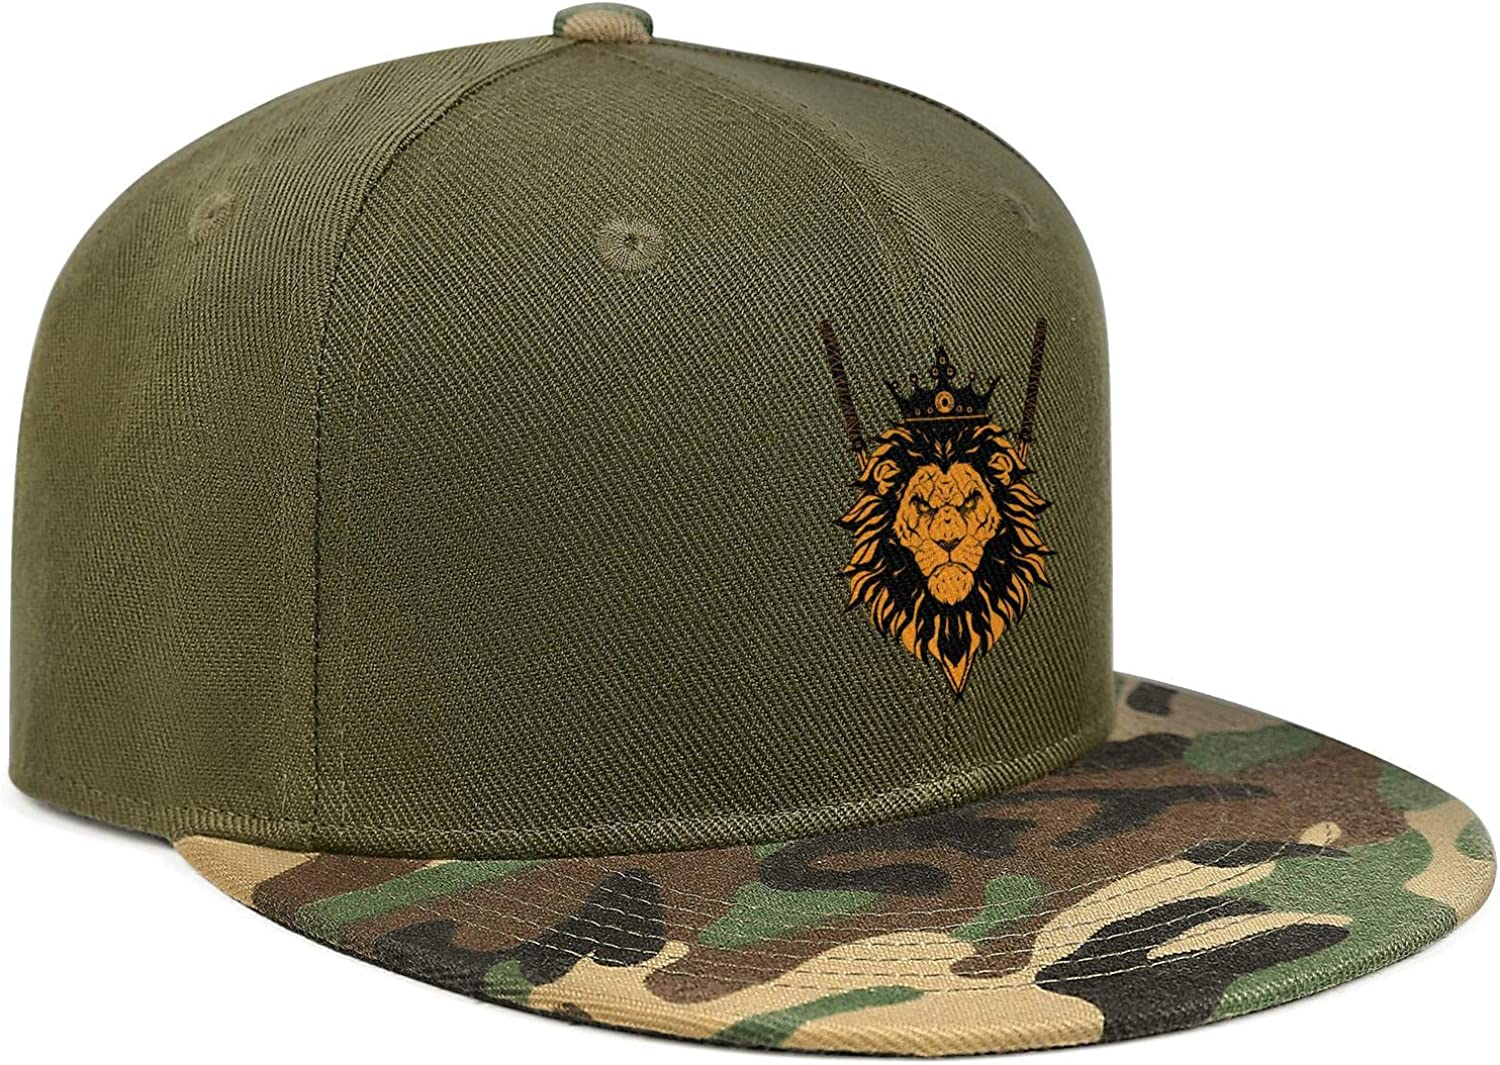 The King Lion with Knifes.PNG Unisex Baseball Cap Fitted Sun Caps Adjustable Trucker Caps Dad-Hat